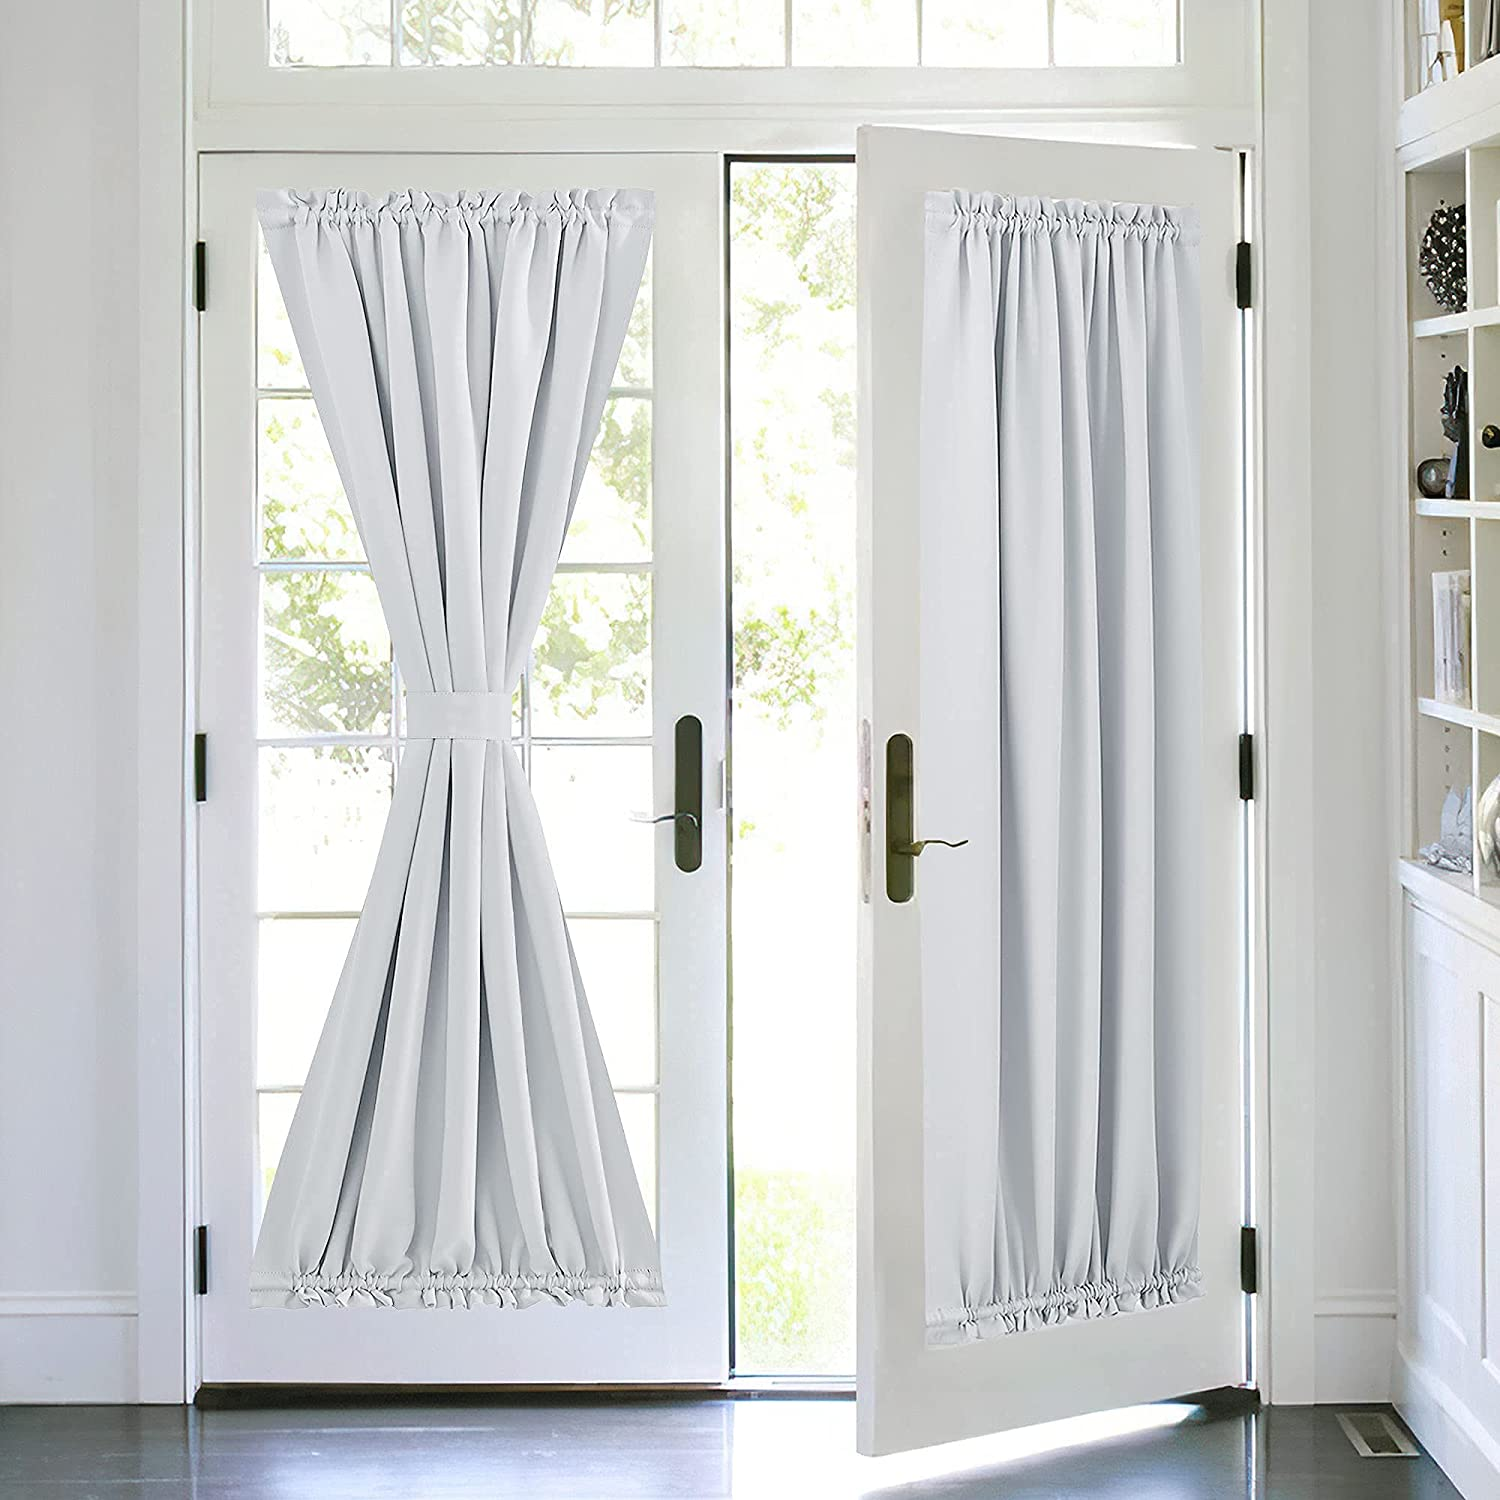 PONY DANCE White Door Curtain - Window Treatments E Energy High 70% OFF Outlet material Solid